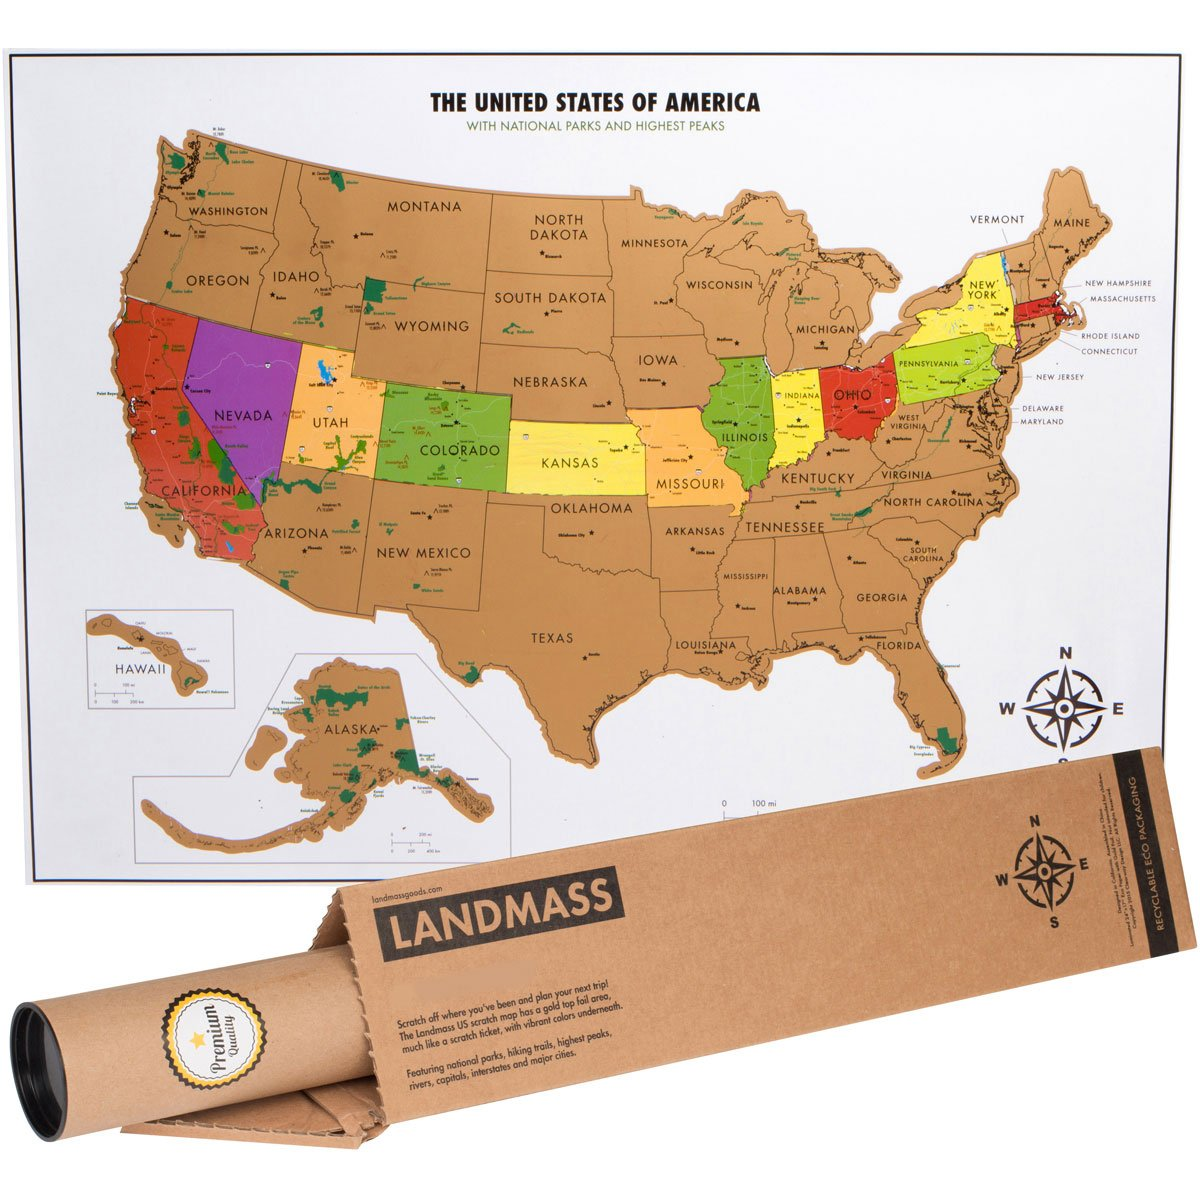 Canyonlands Maps NPMapscom Just Free Maps Period Anderson Design - Poster map of usa